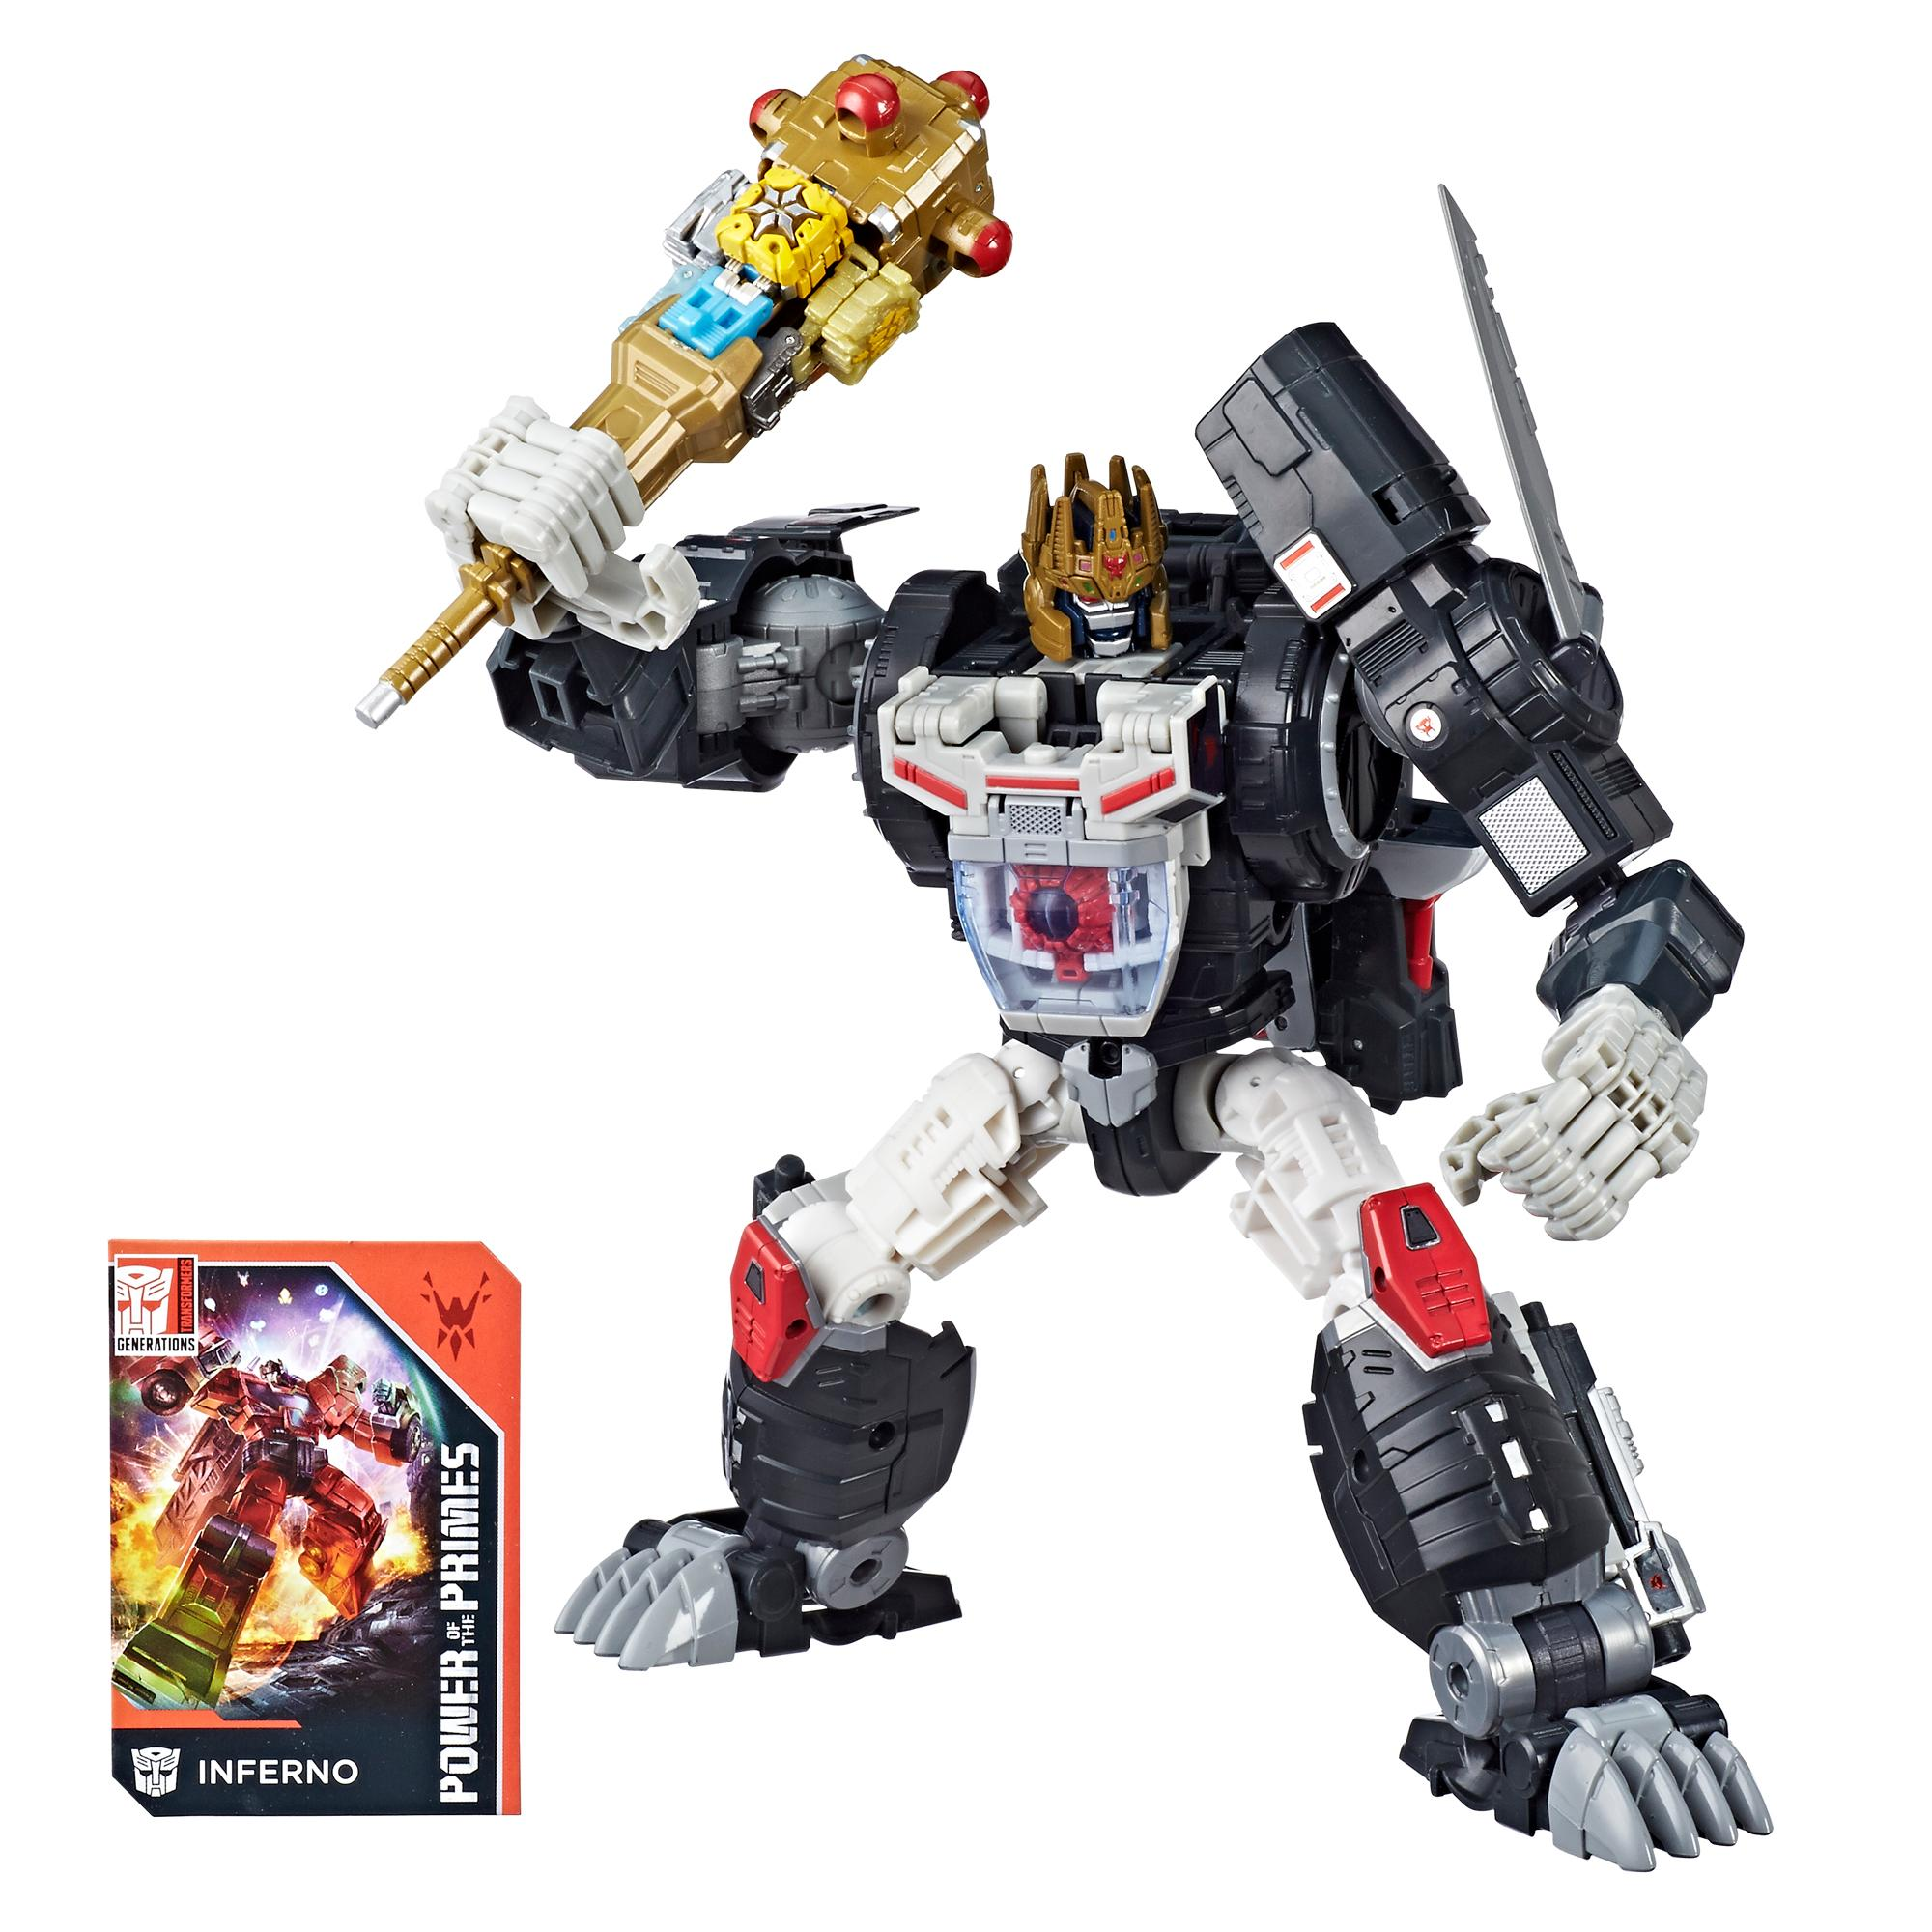 Transformers: Generations Power of the Primes Throne of the Primes (SDCC Exclusive)